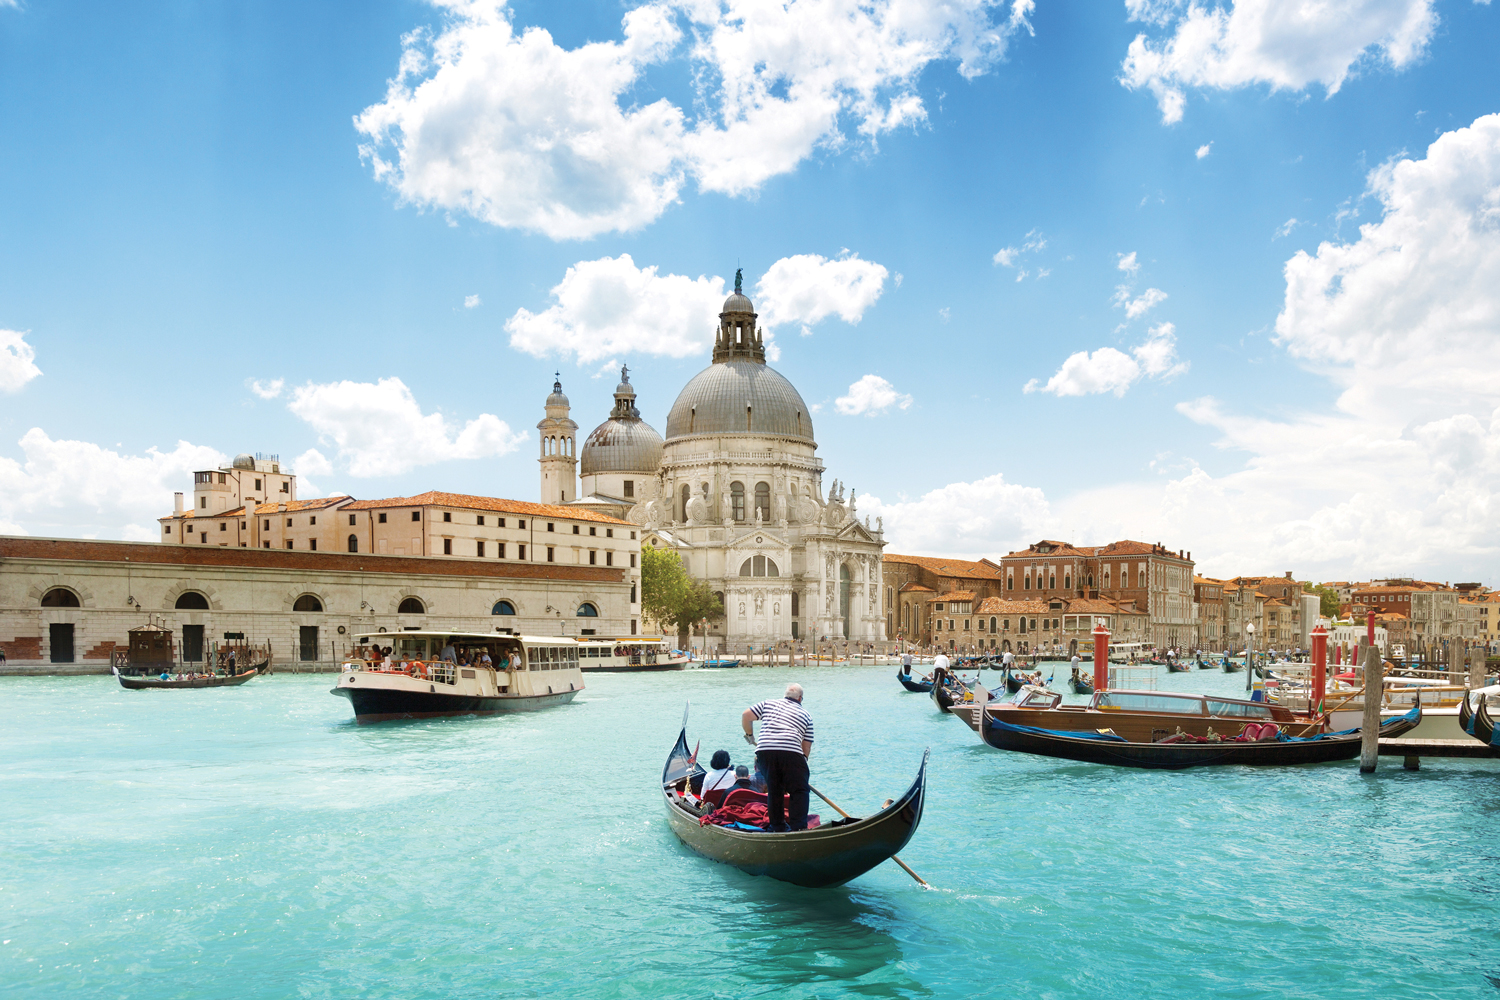 http://extranet.jetlinetravel.info/express-images/Express_Europe-Italy-Venice-Generic3.jpg